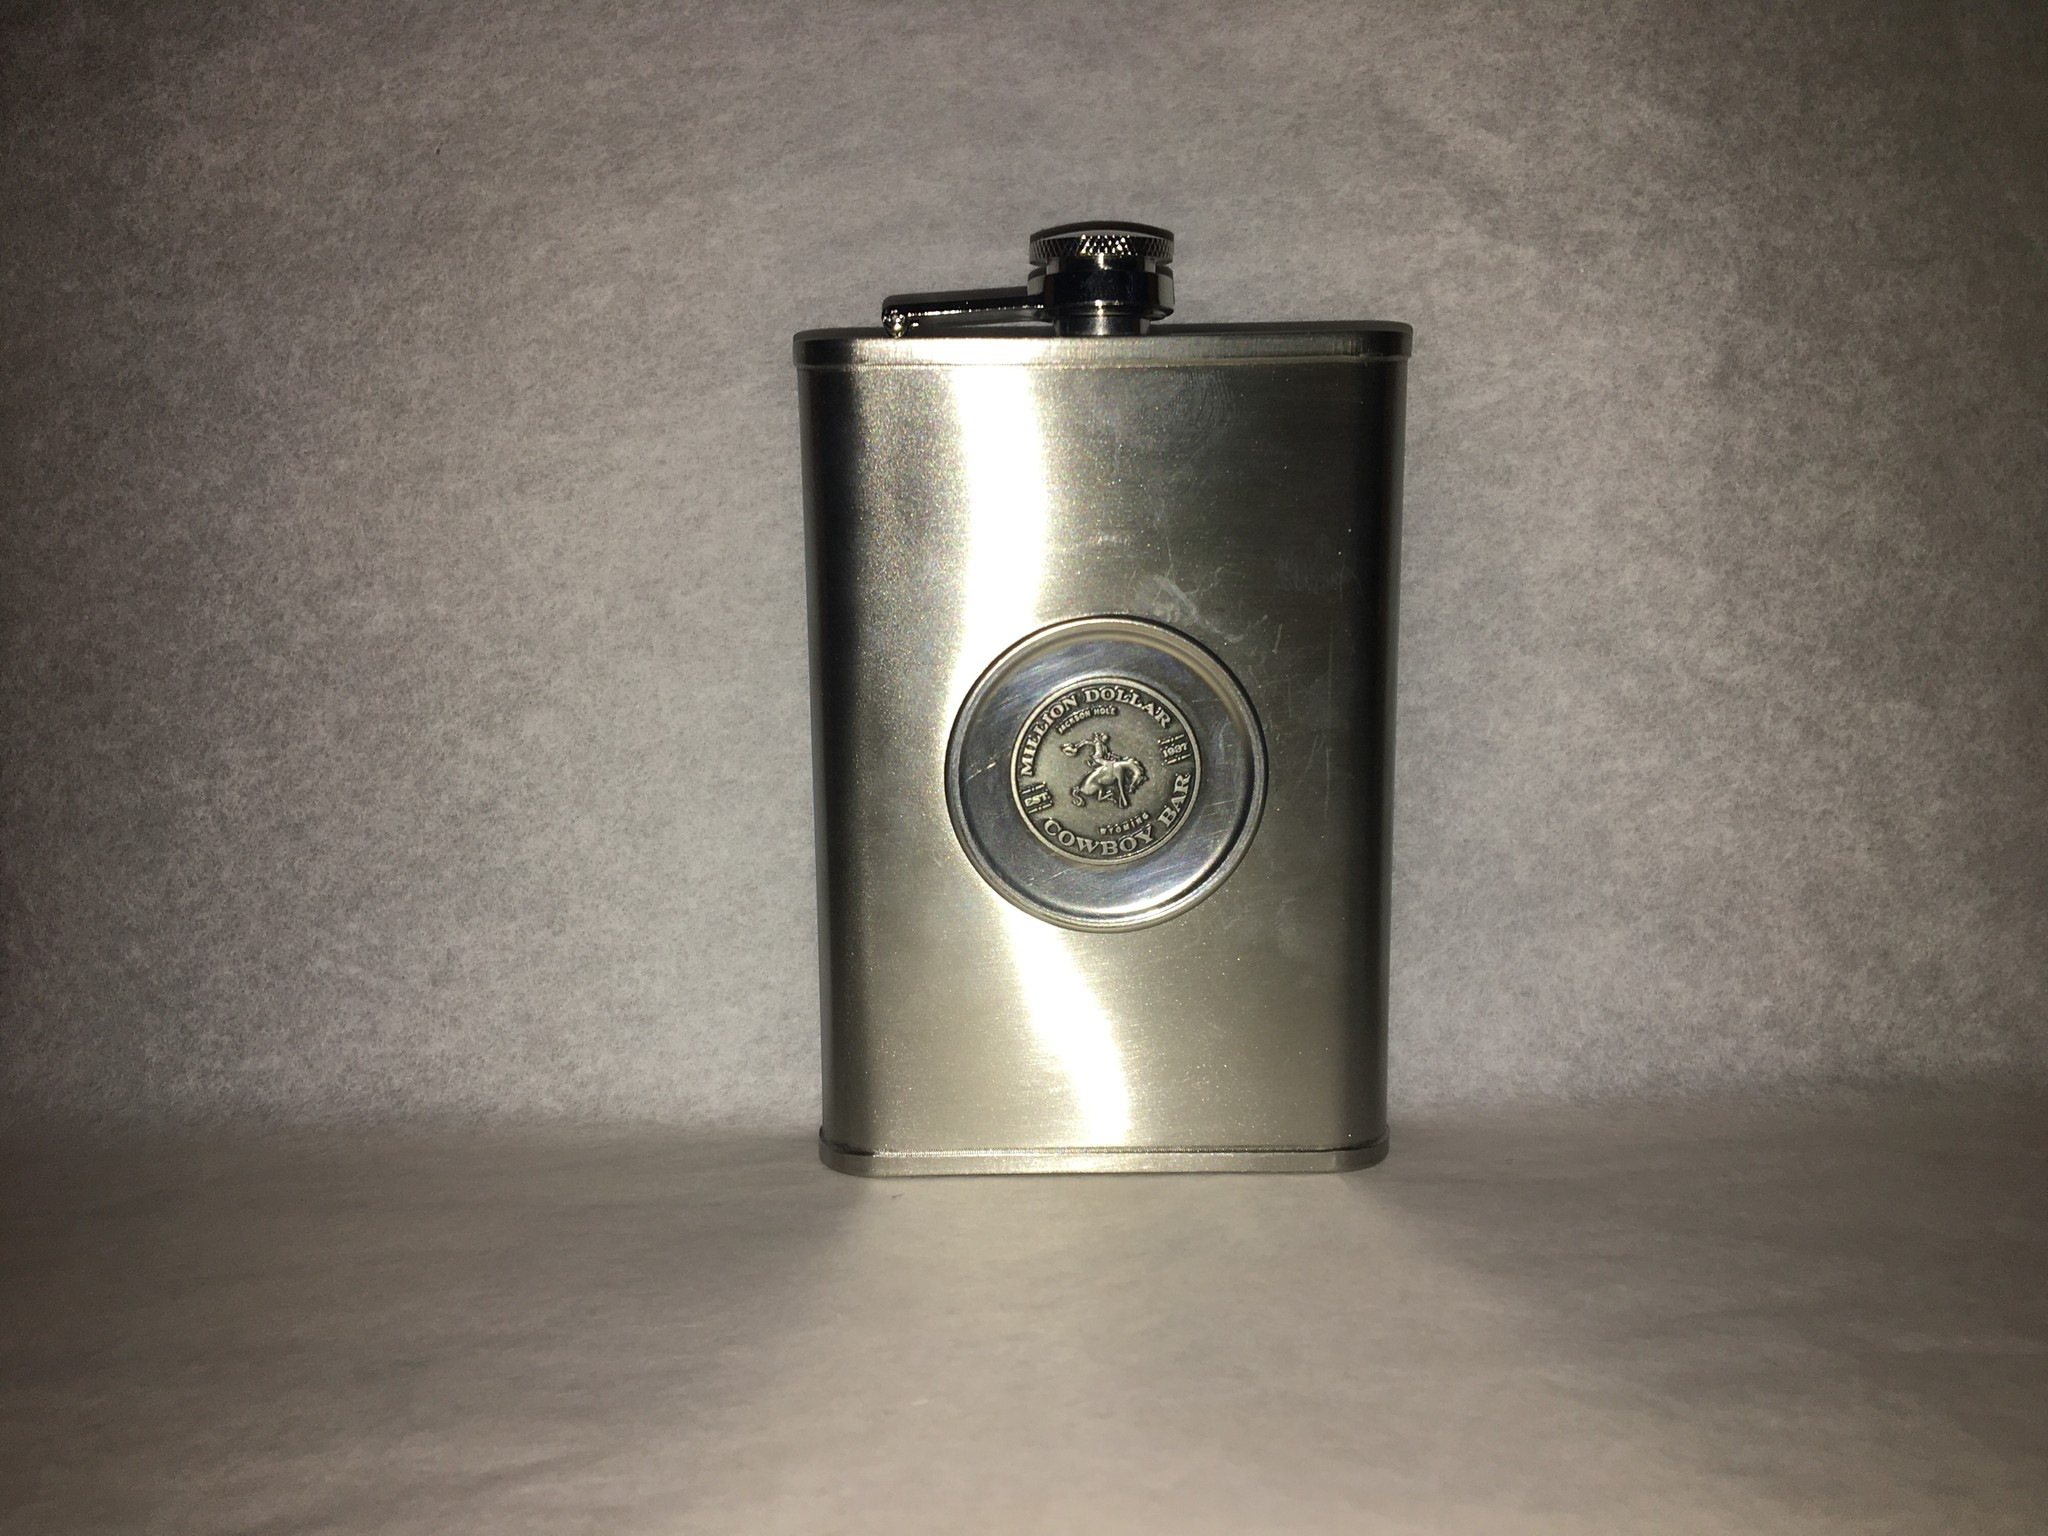 8 oz Flask with Collapsible Shot Glass